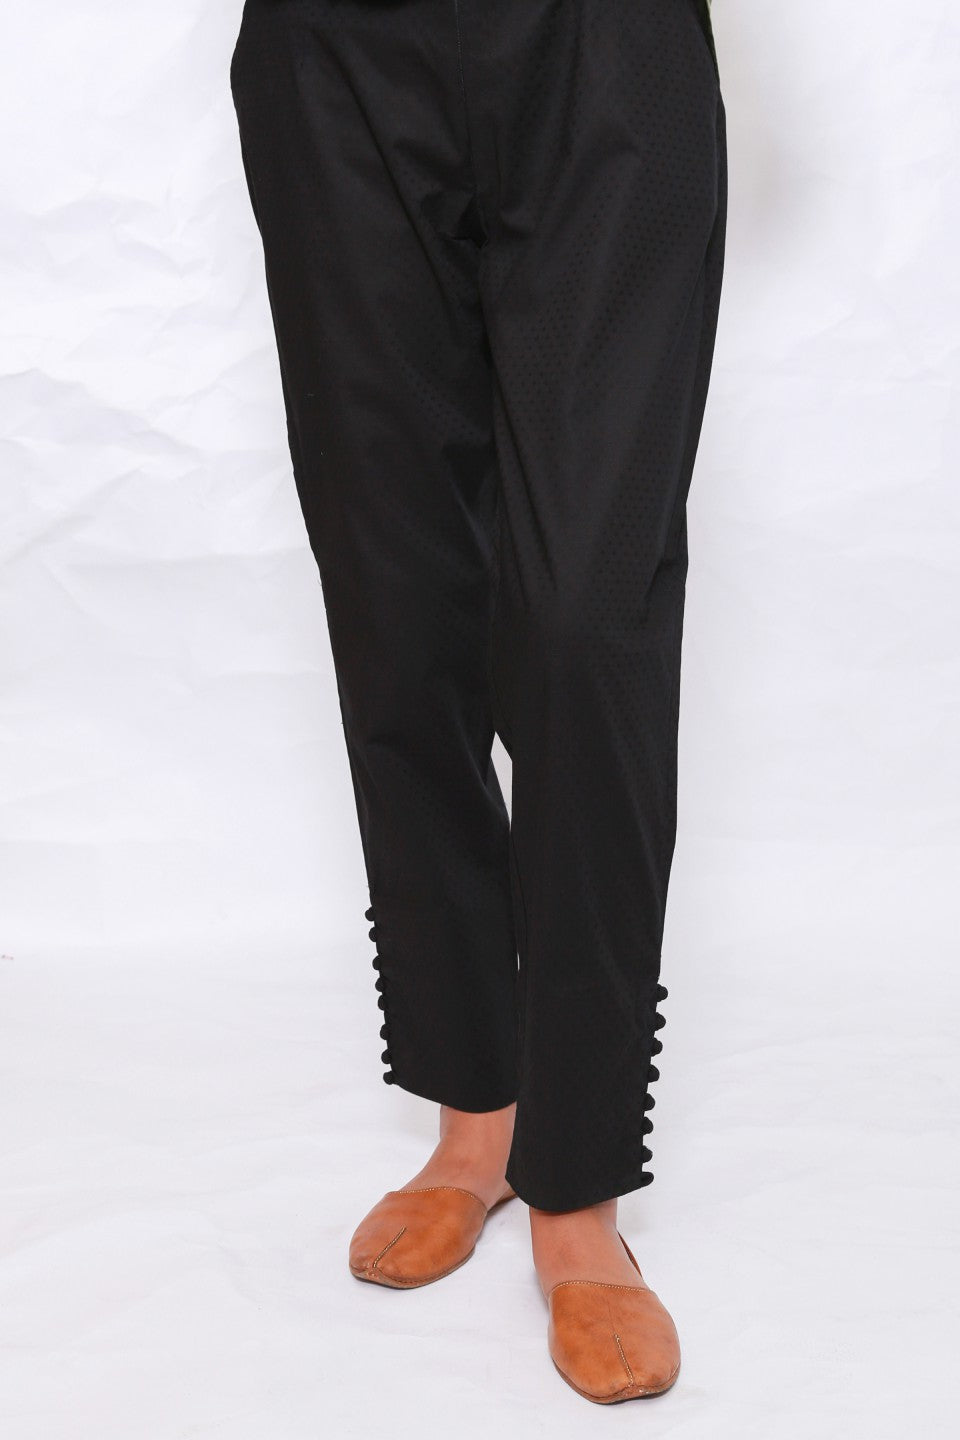 Generation - Black Textured Trousers